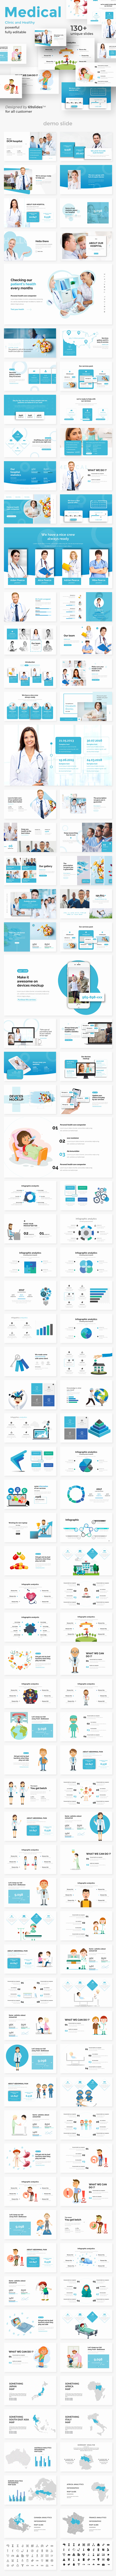 Medical Clinic - Health and Doctor Medical Google Slide Template - Google Slides Presentation Templates